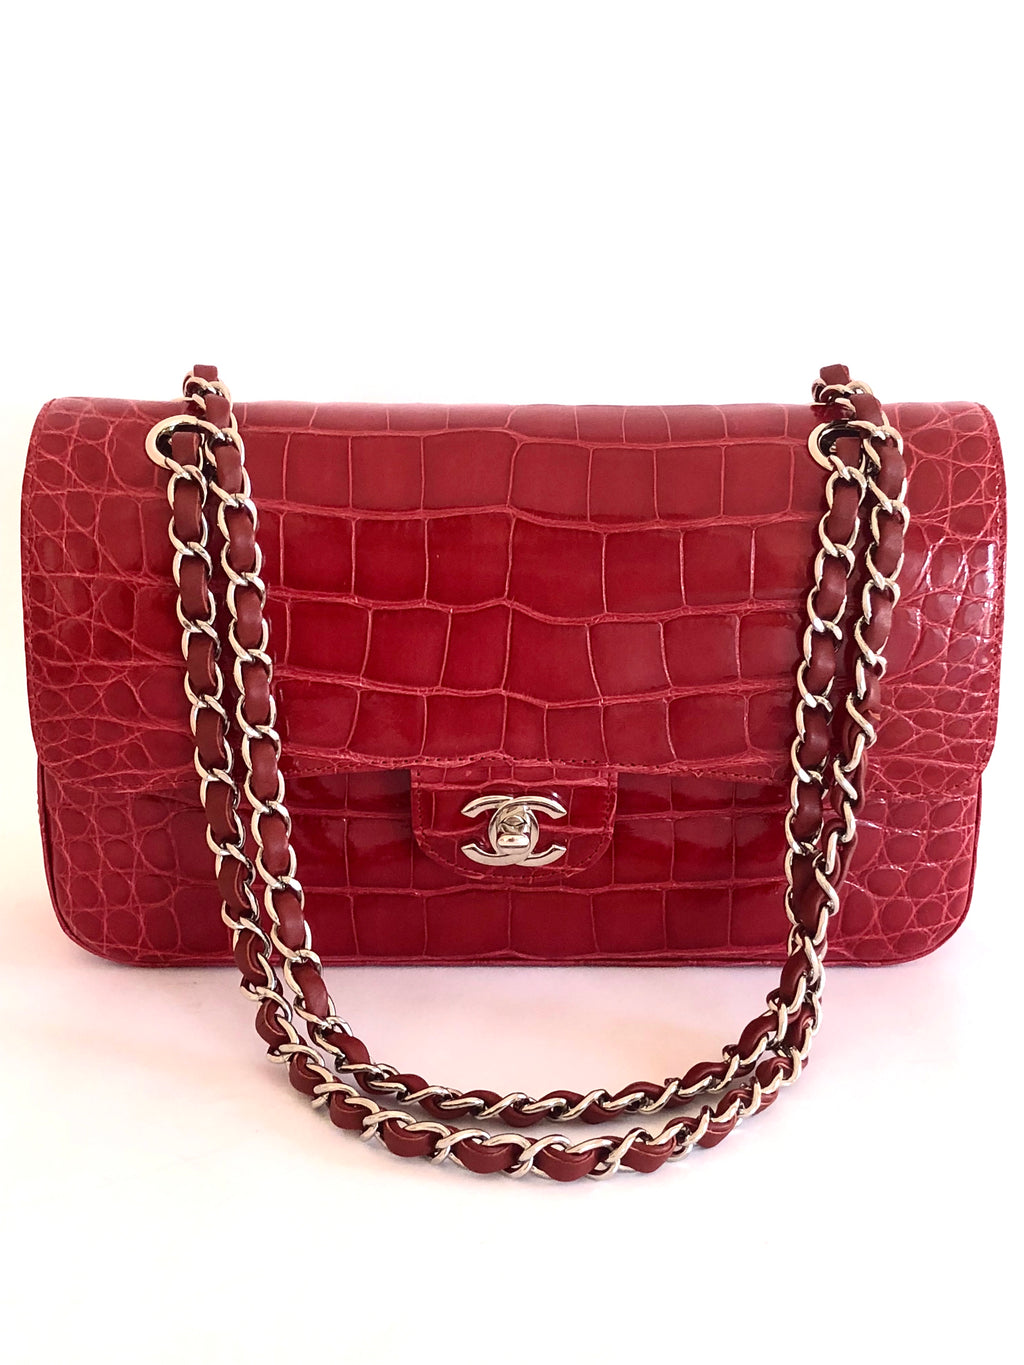 Chanel Red Alligator Classic Flap Shoulder Bag 2017